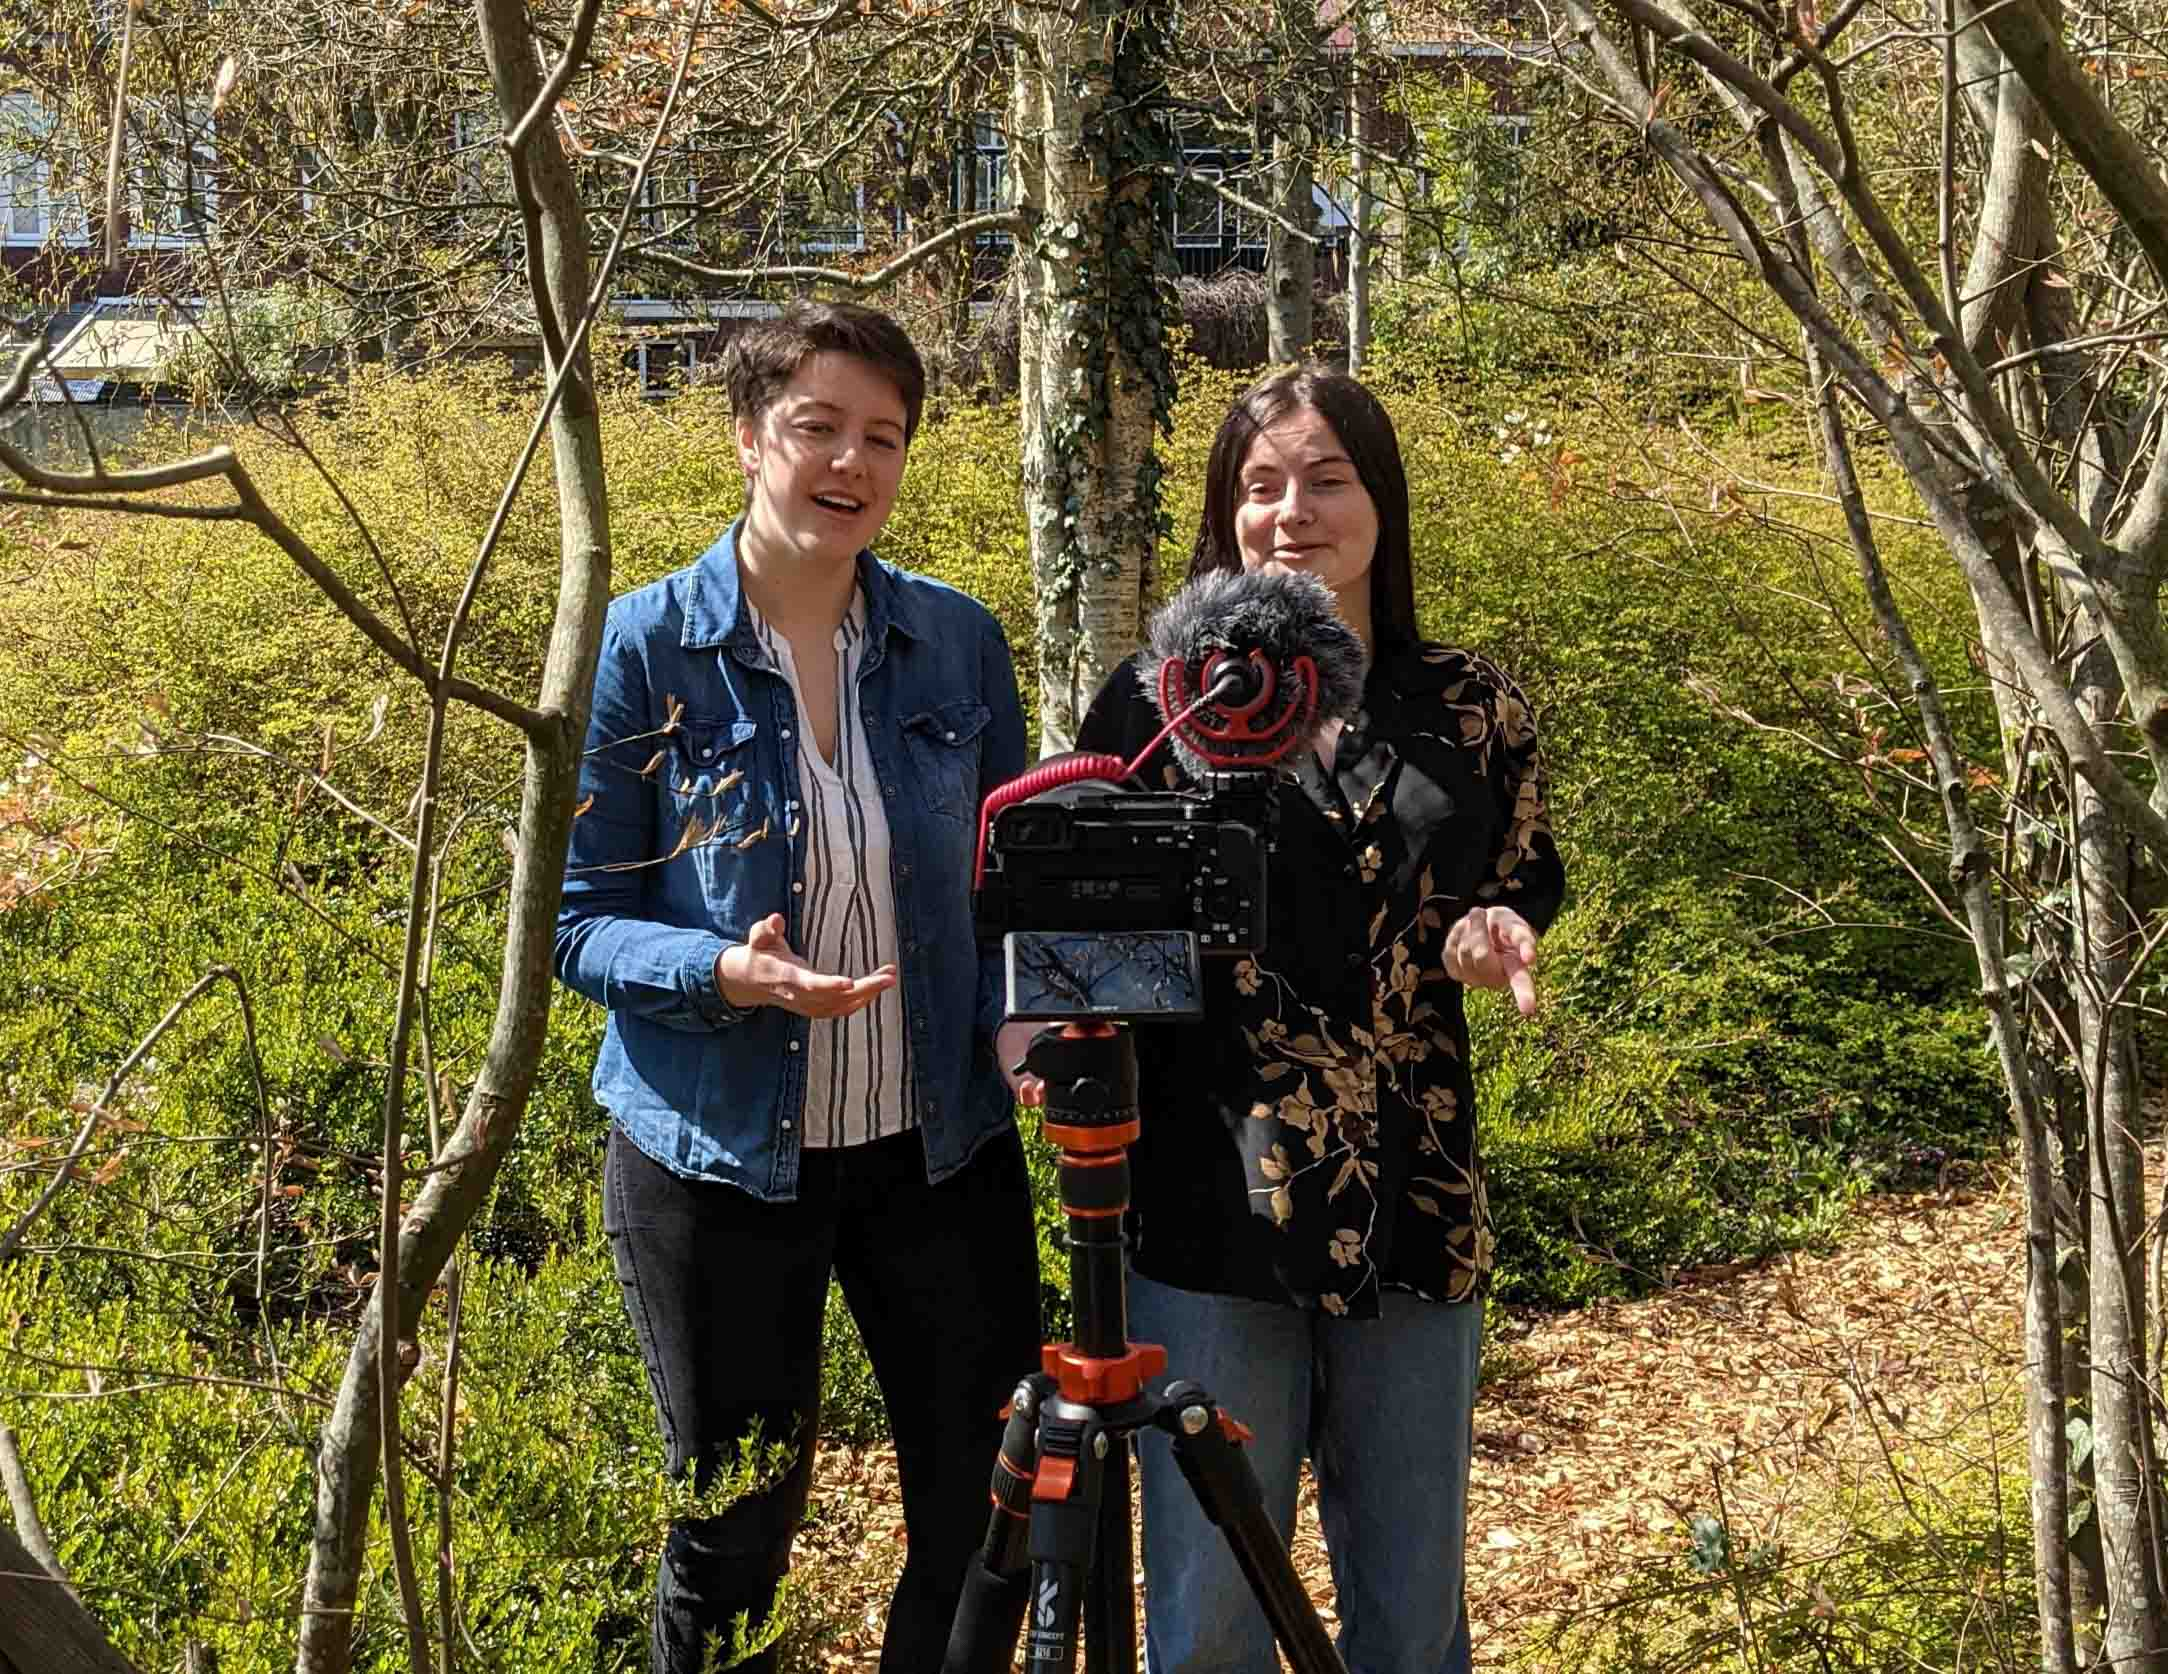 Two scientists filming a video